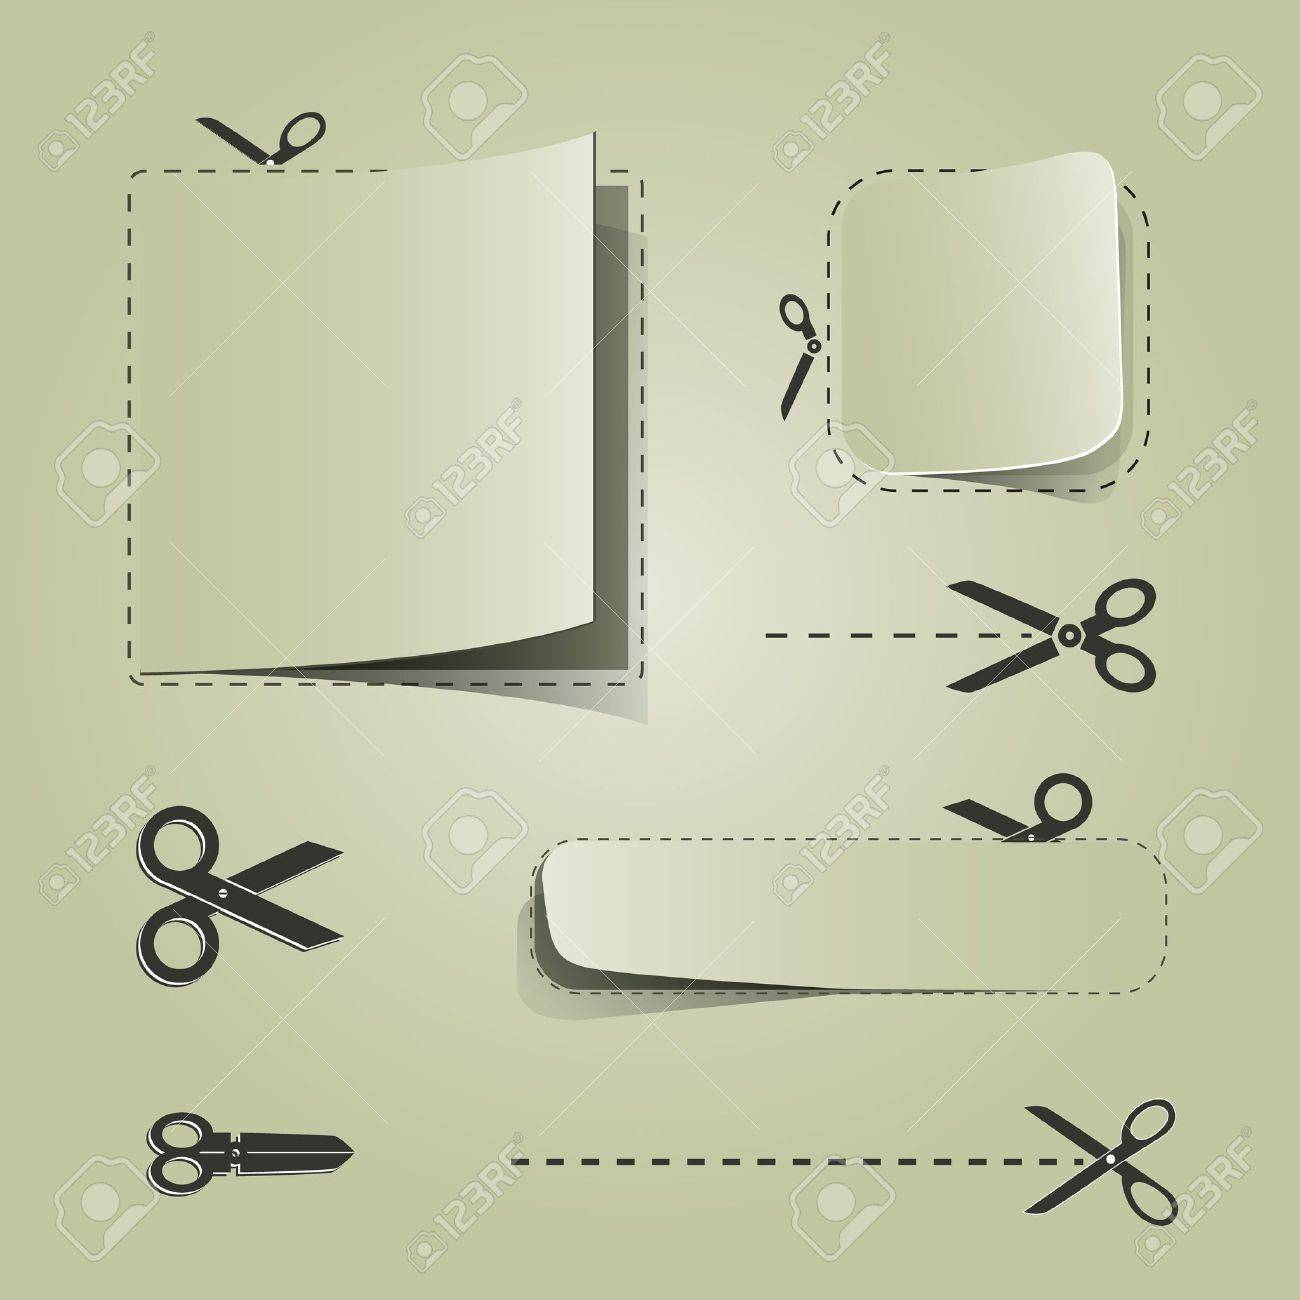 blank advertising coupons scissors royalty cliparts blank advertising coupons scissors stock vector 14754079